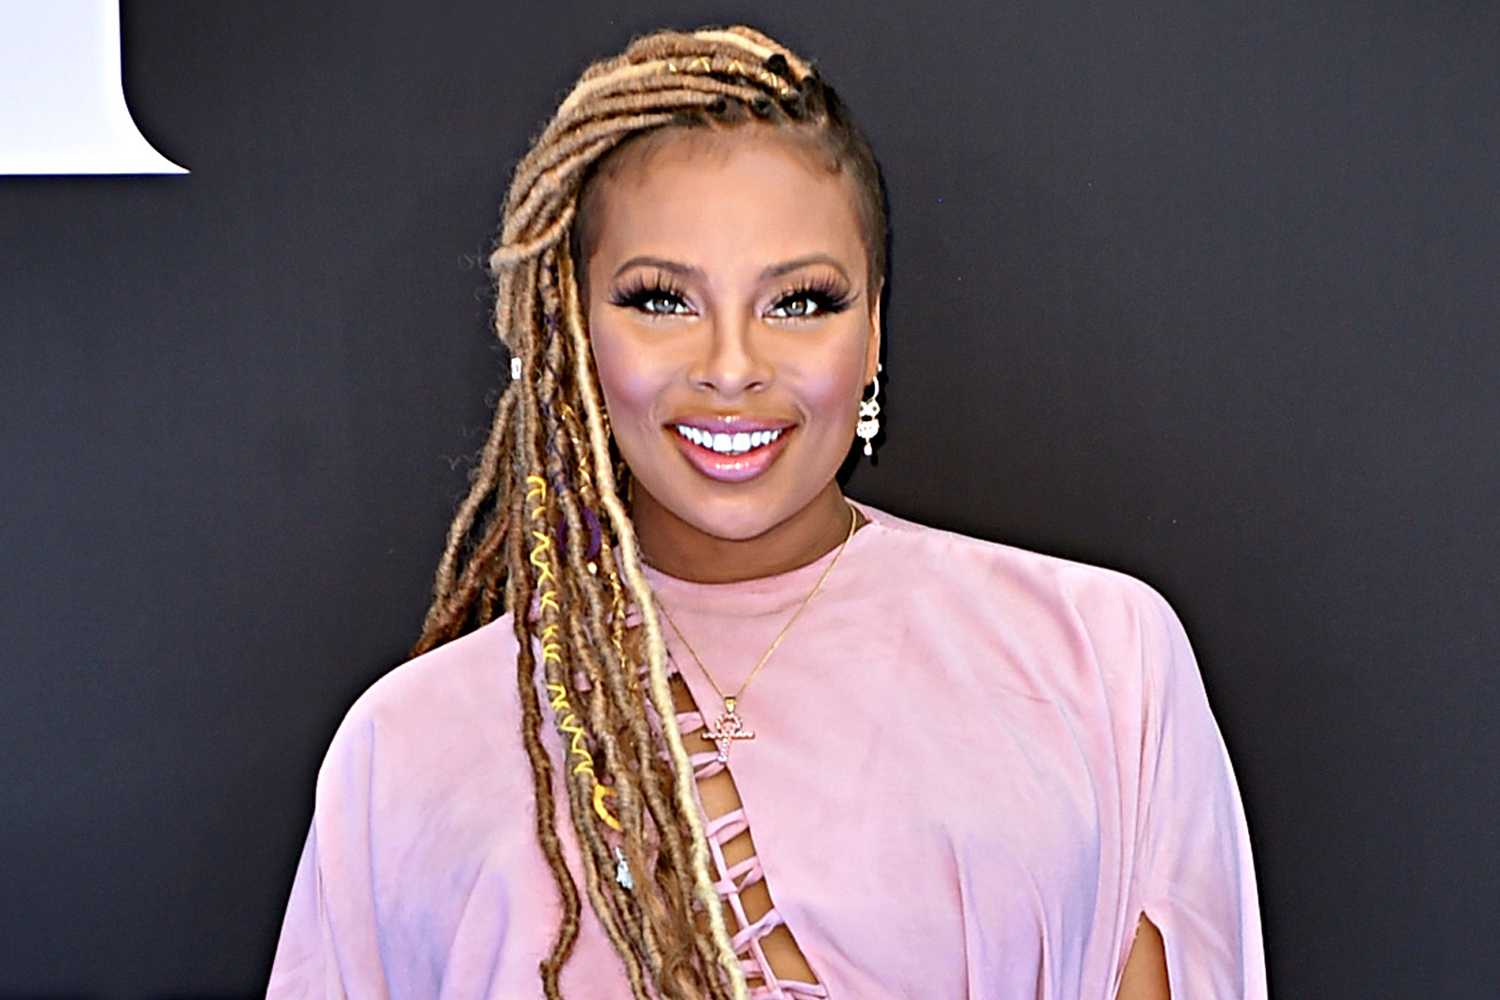 eva-marcille-celebrates-her-36th-birthday-see-her-message-to-mark-the-event